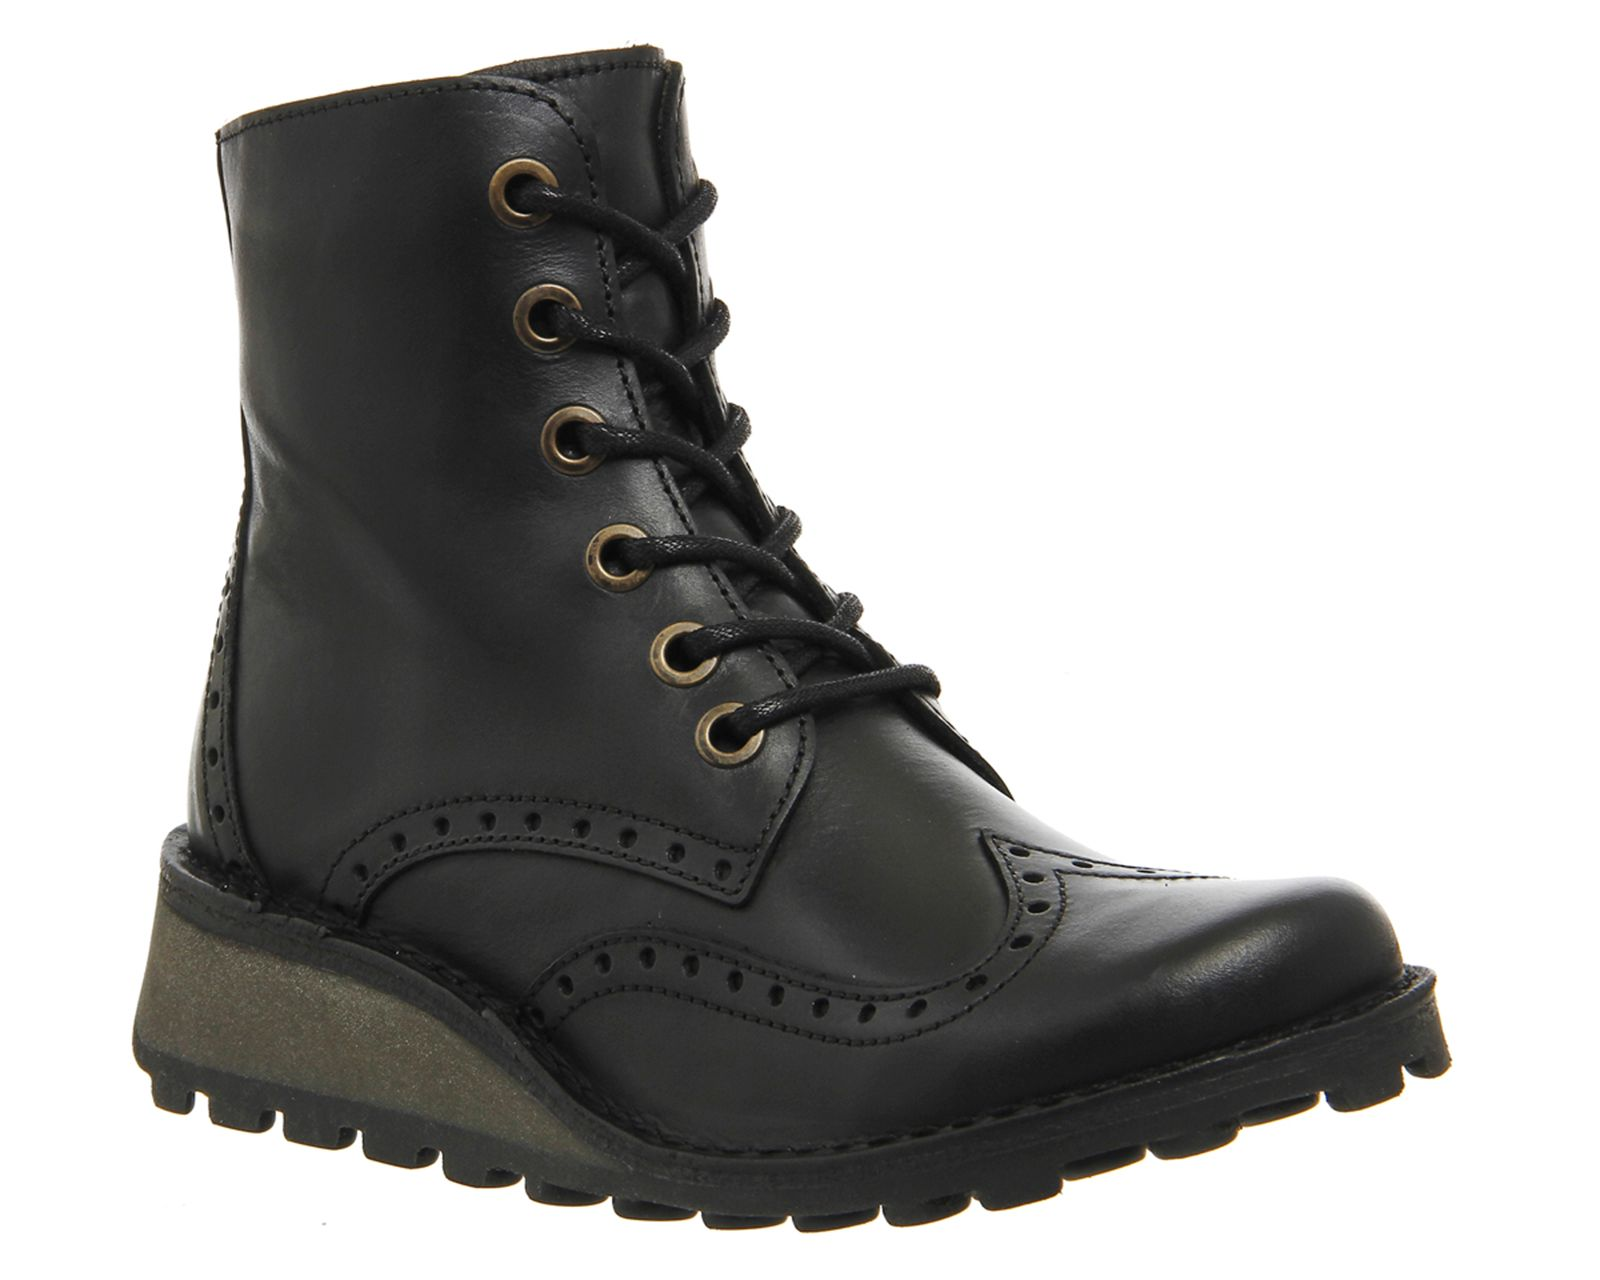 Fly Fly Marl lace up boots, Black